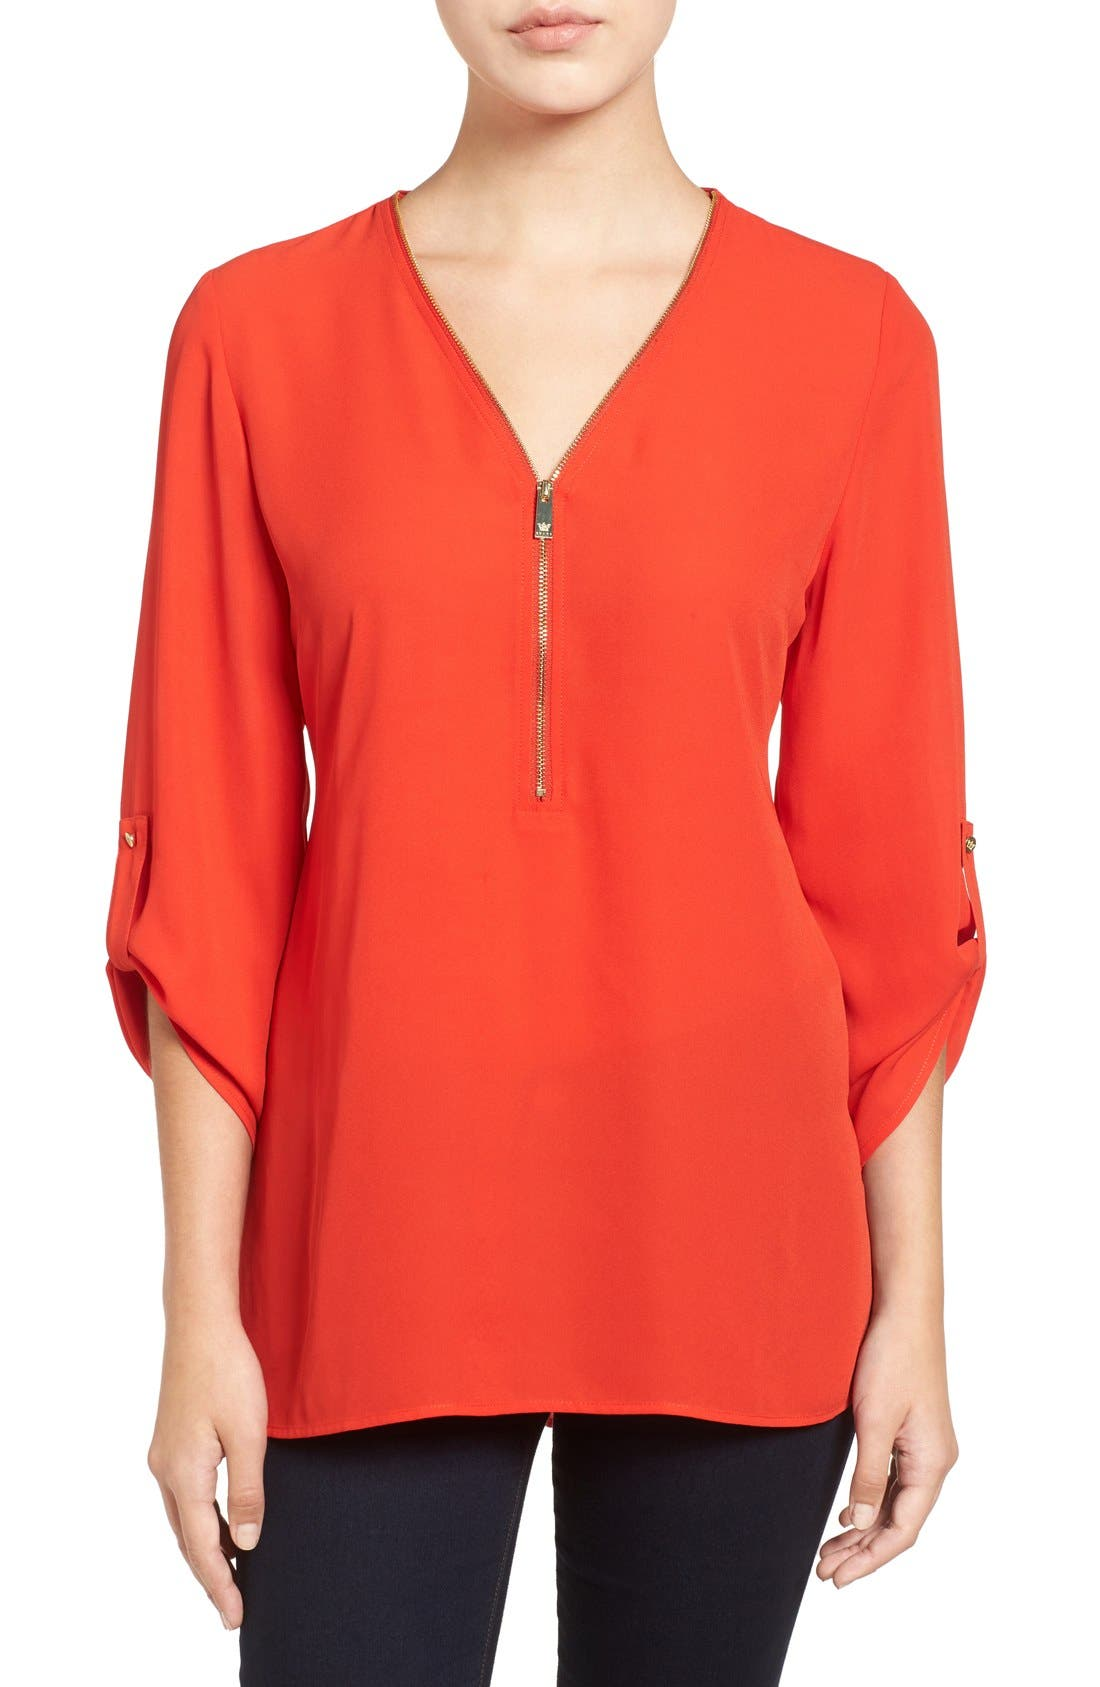 Alternate Image 1 Selected - Chaus Zip V-Neck Blouse